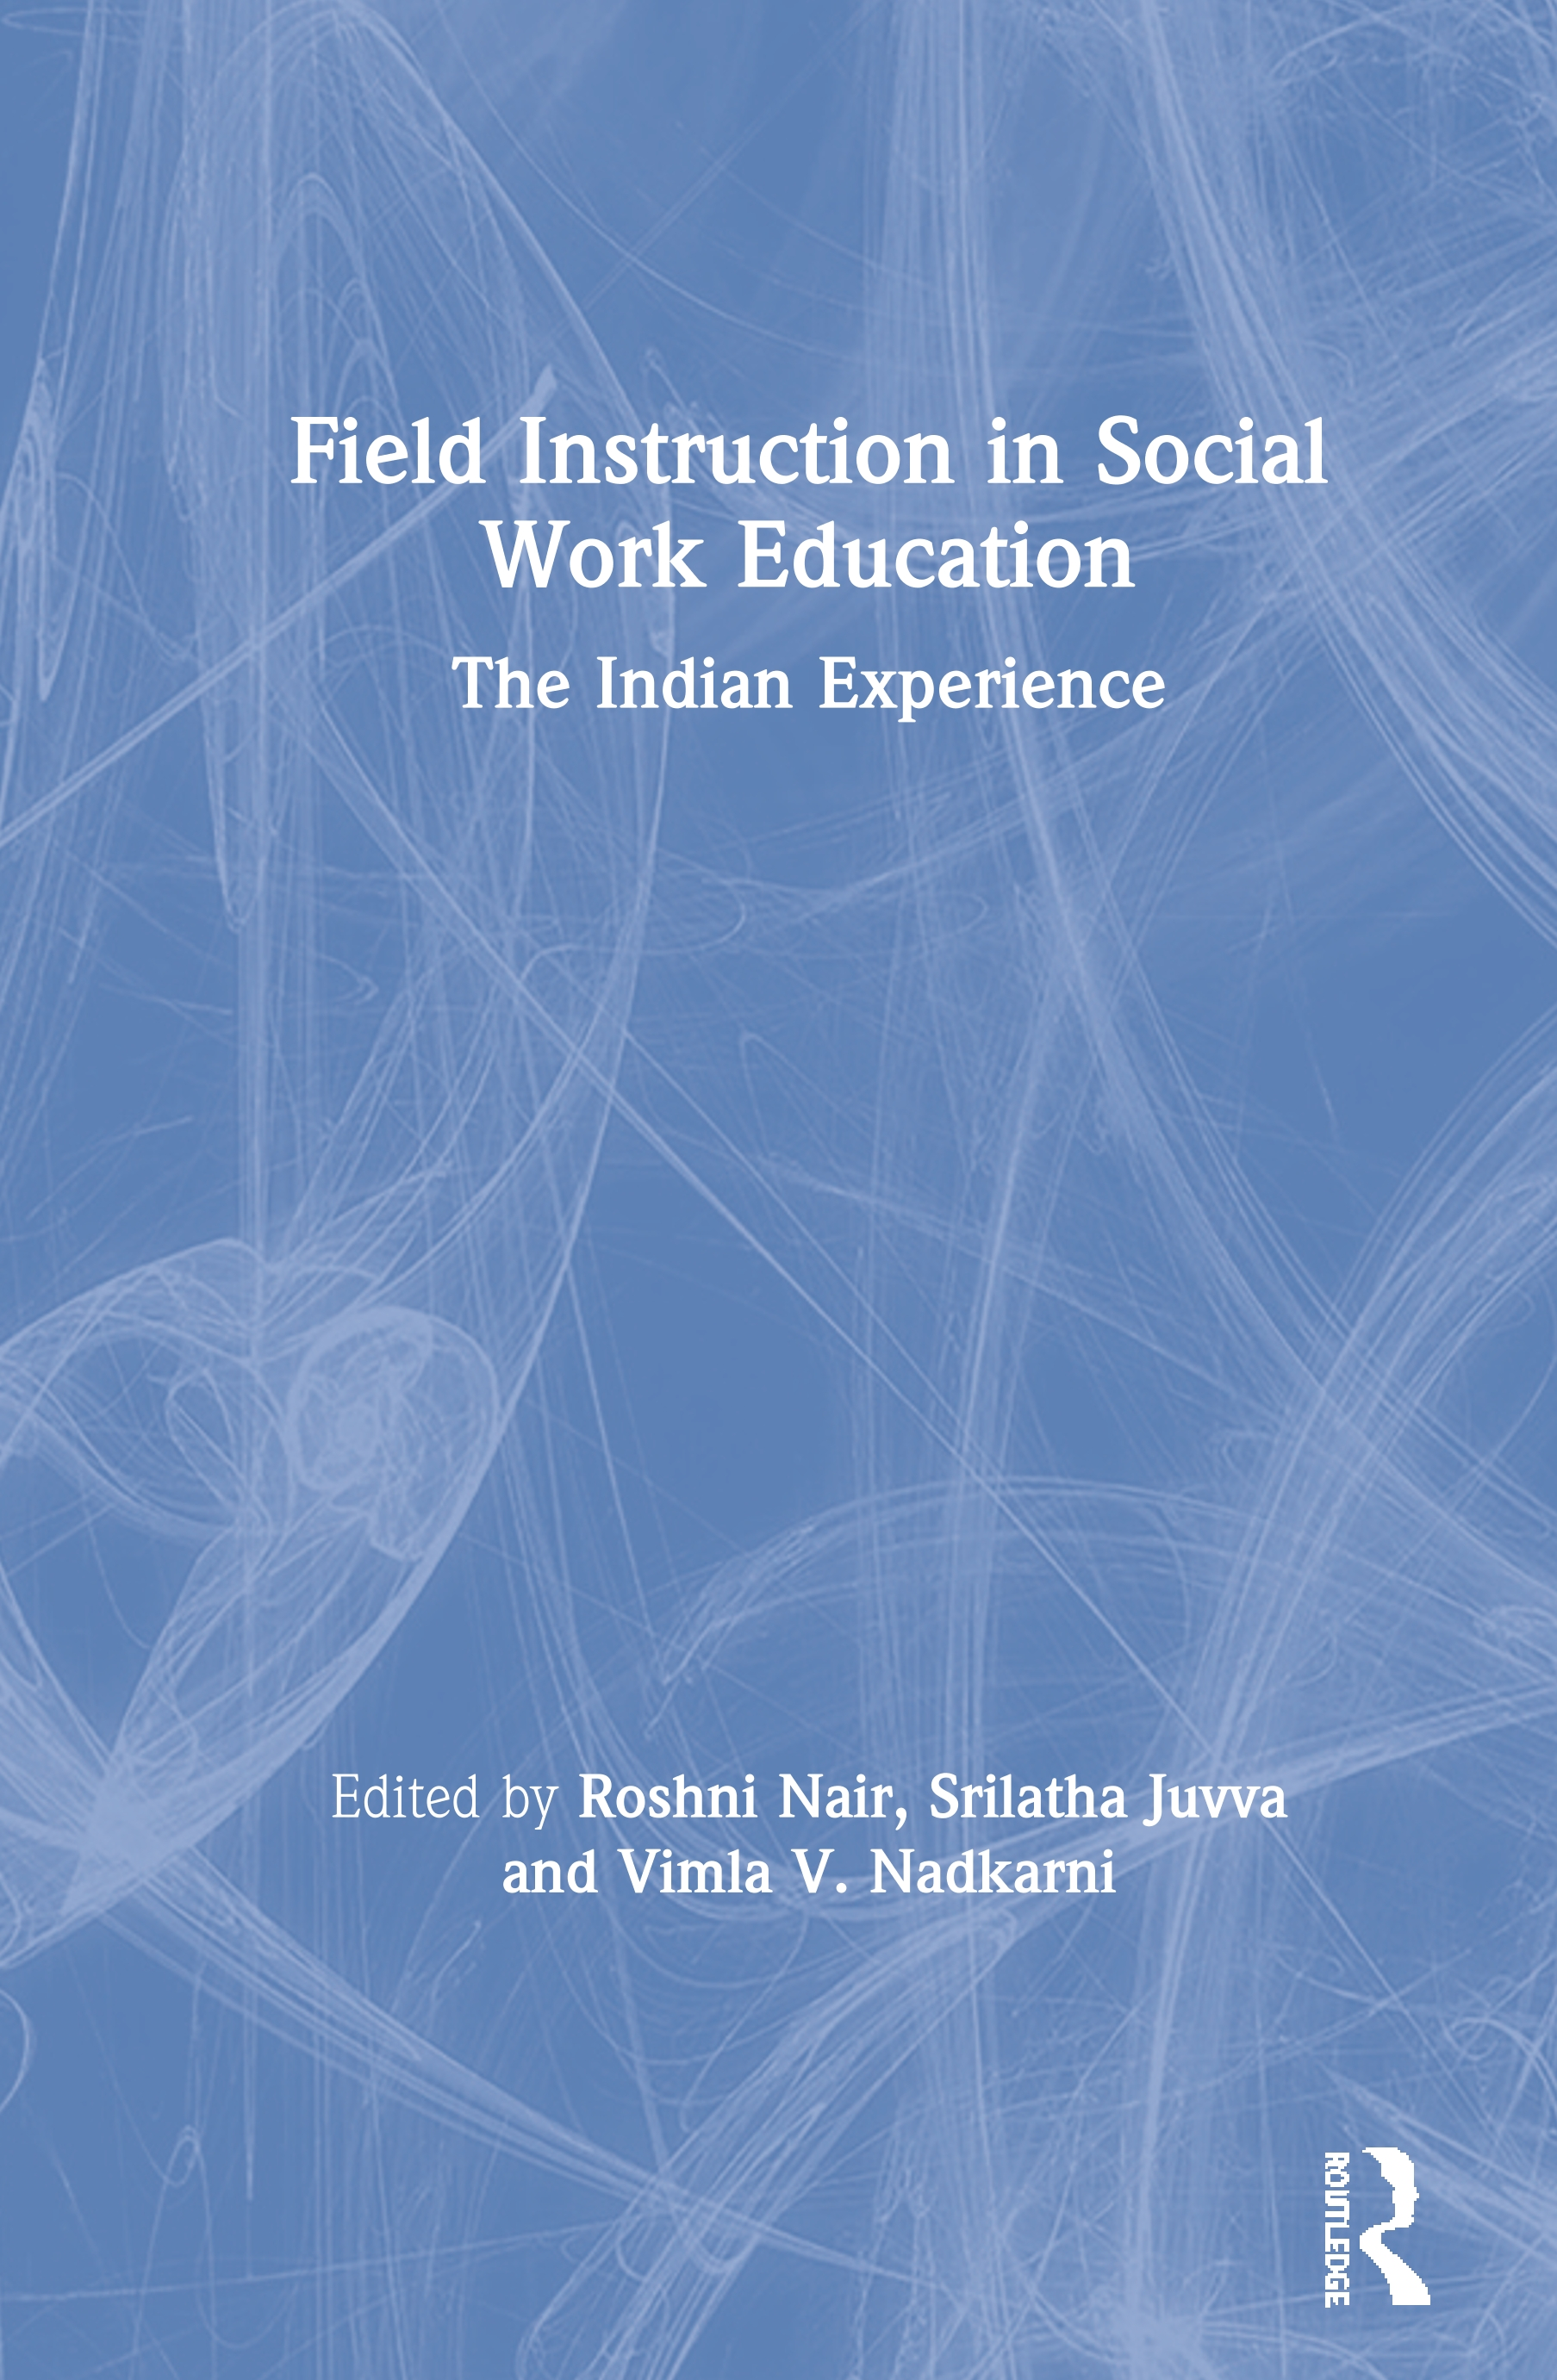 Field Instruction in Social Work Education: A Guide to Research in India book cover